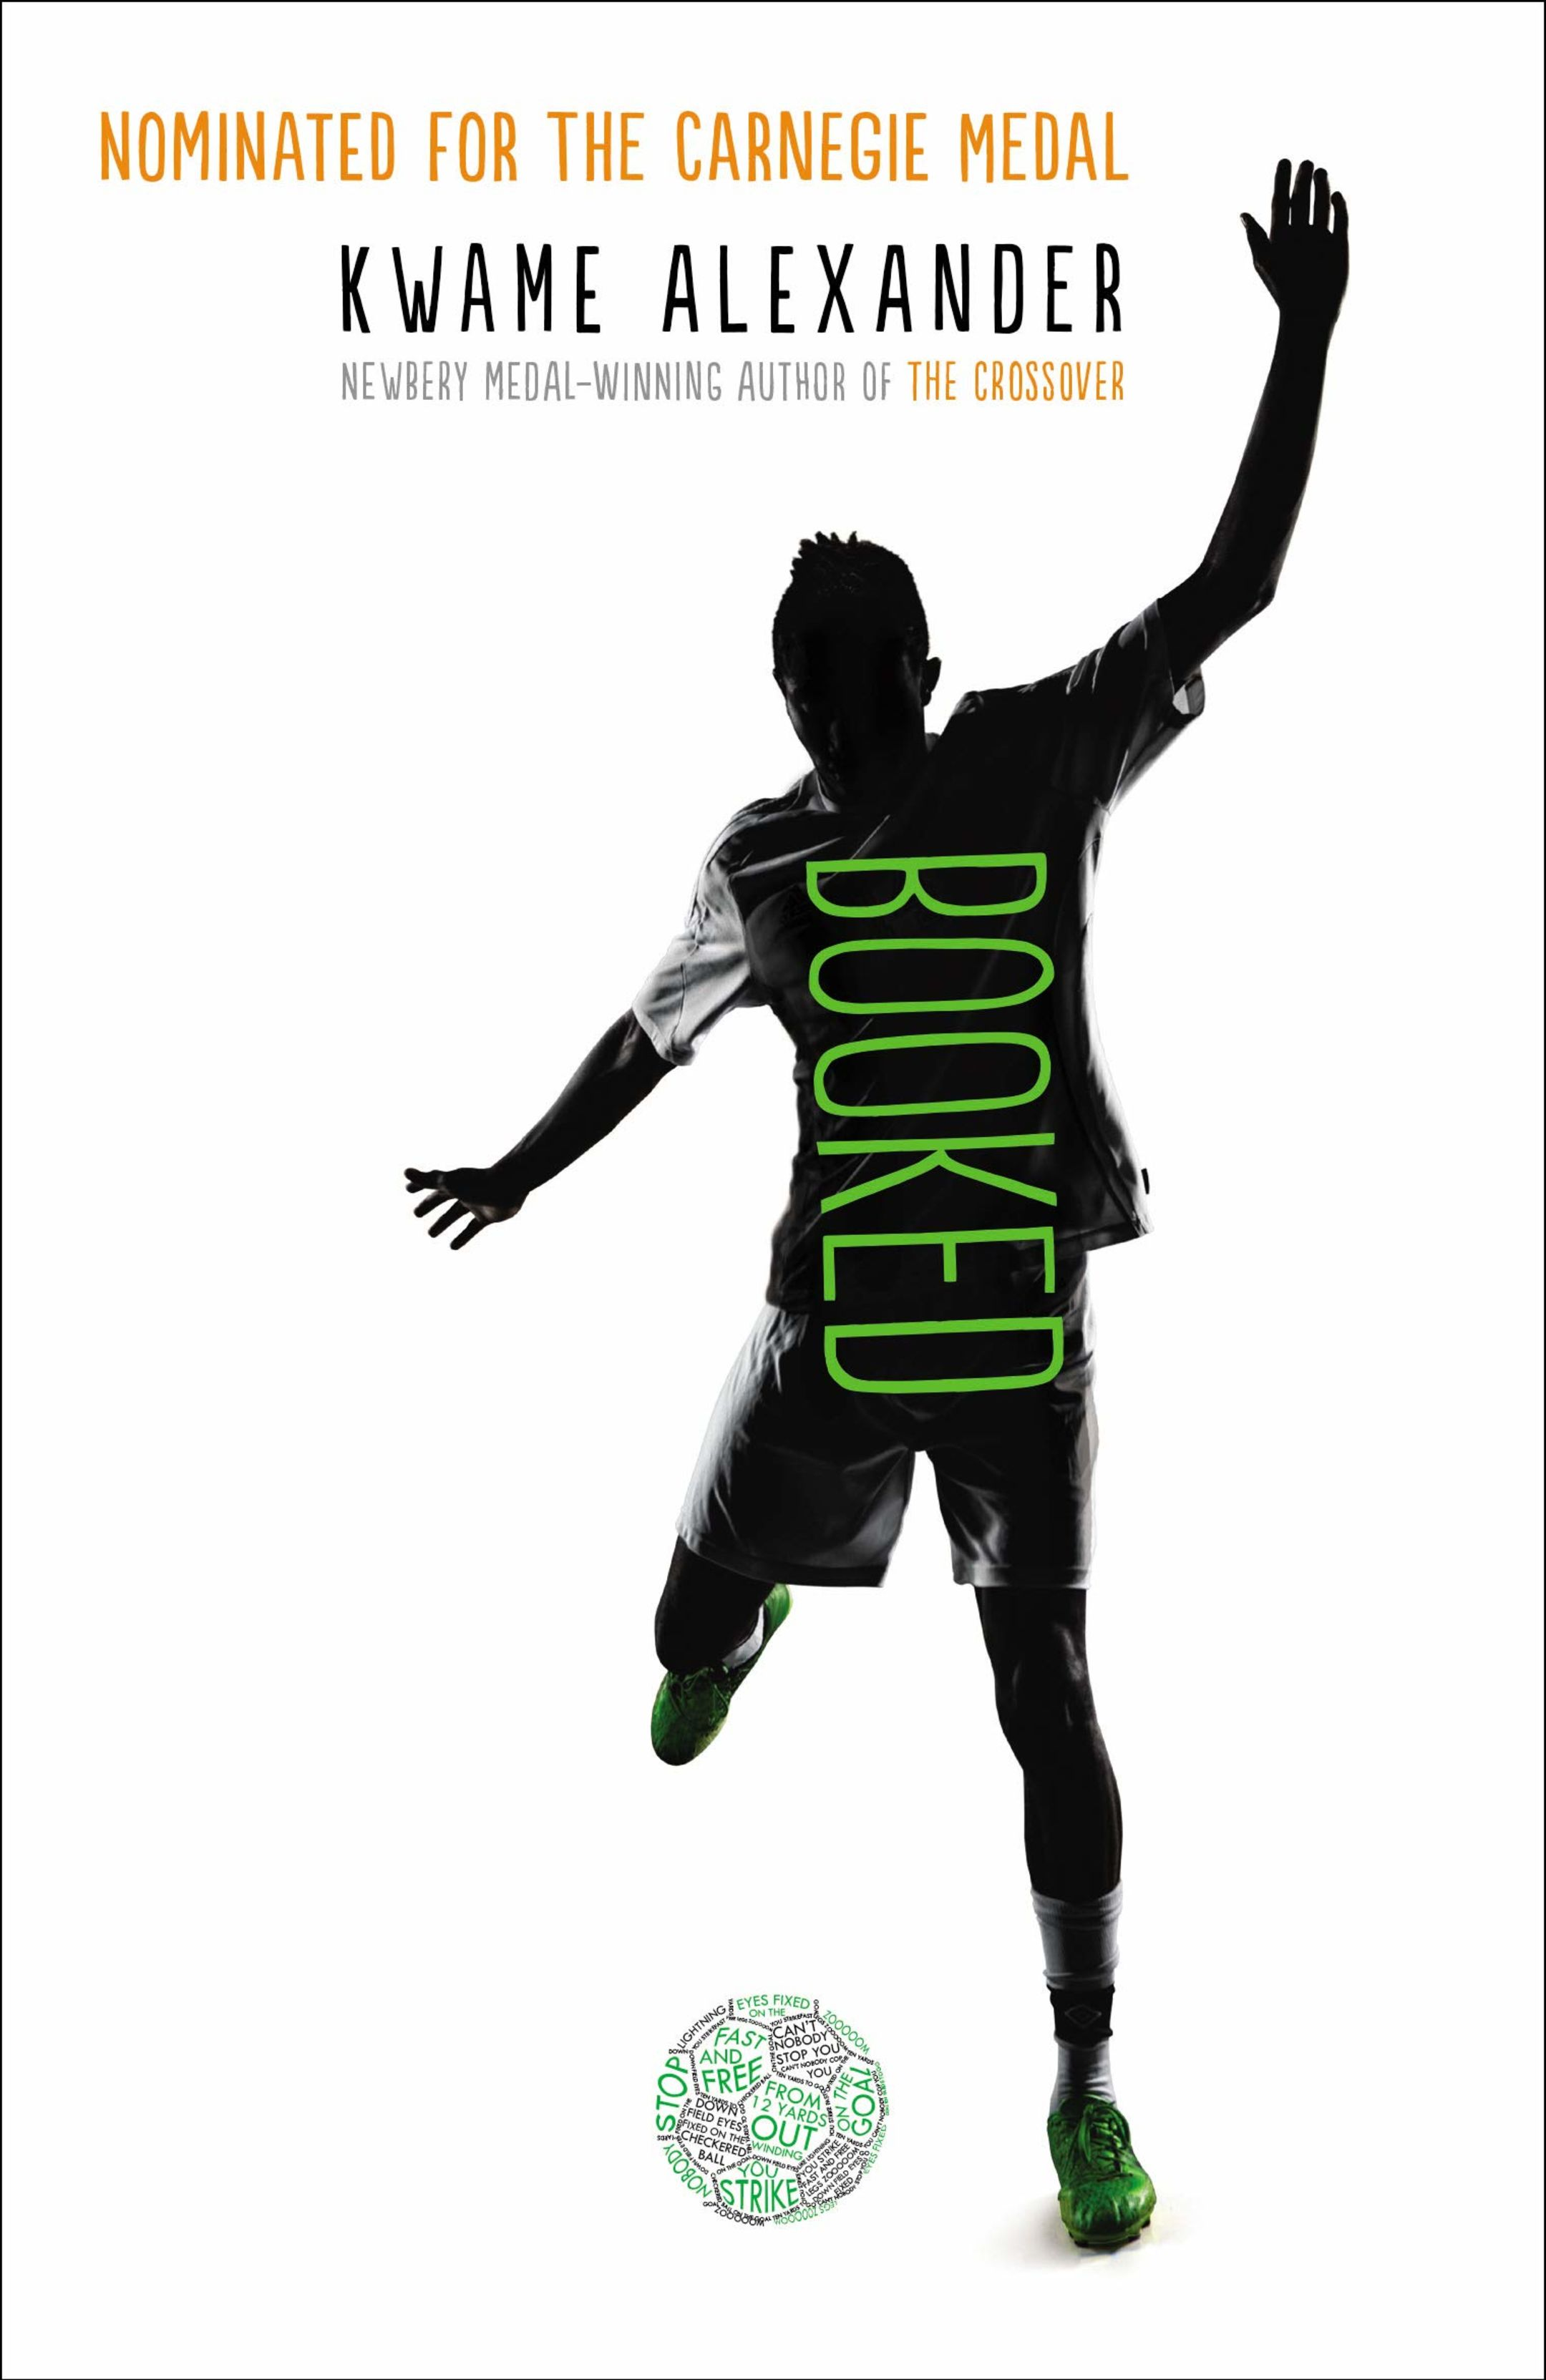 An image of the book cover for Booked by Kwame Alexander.